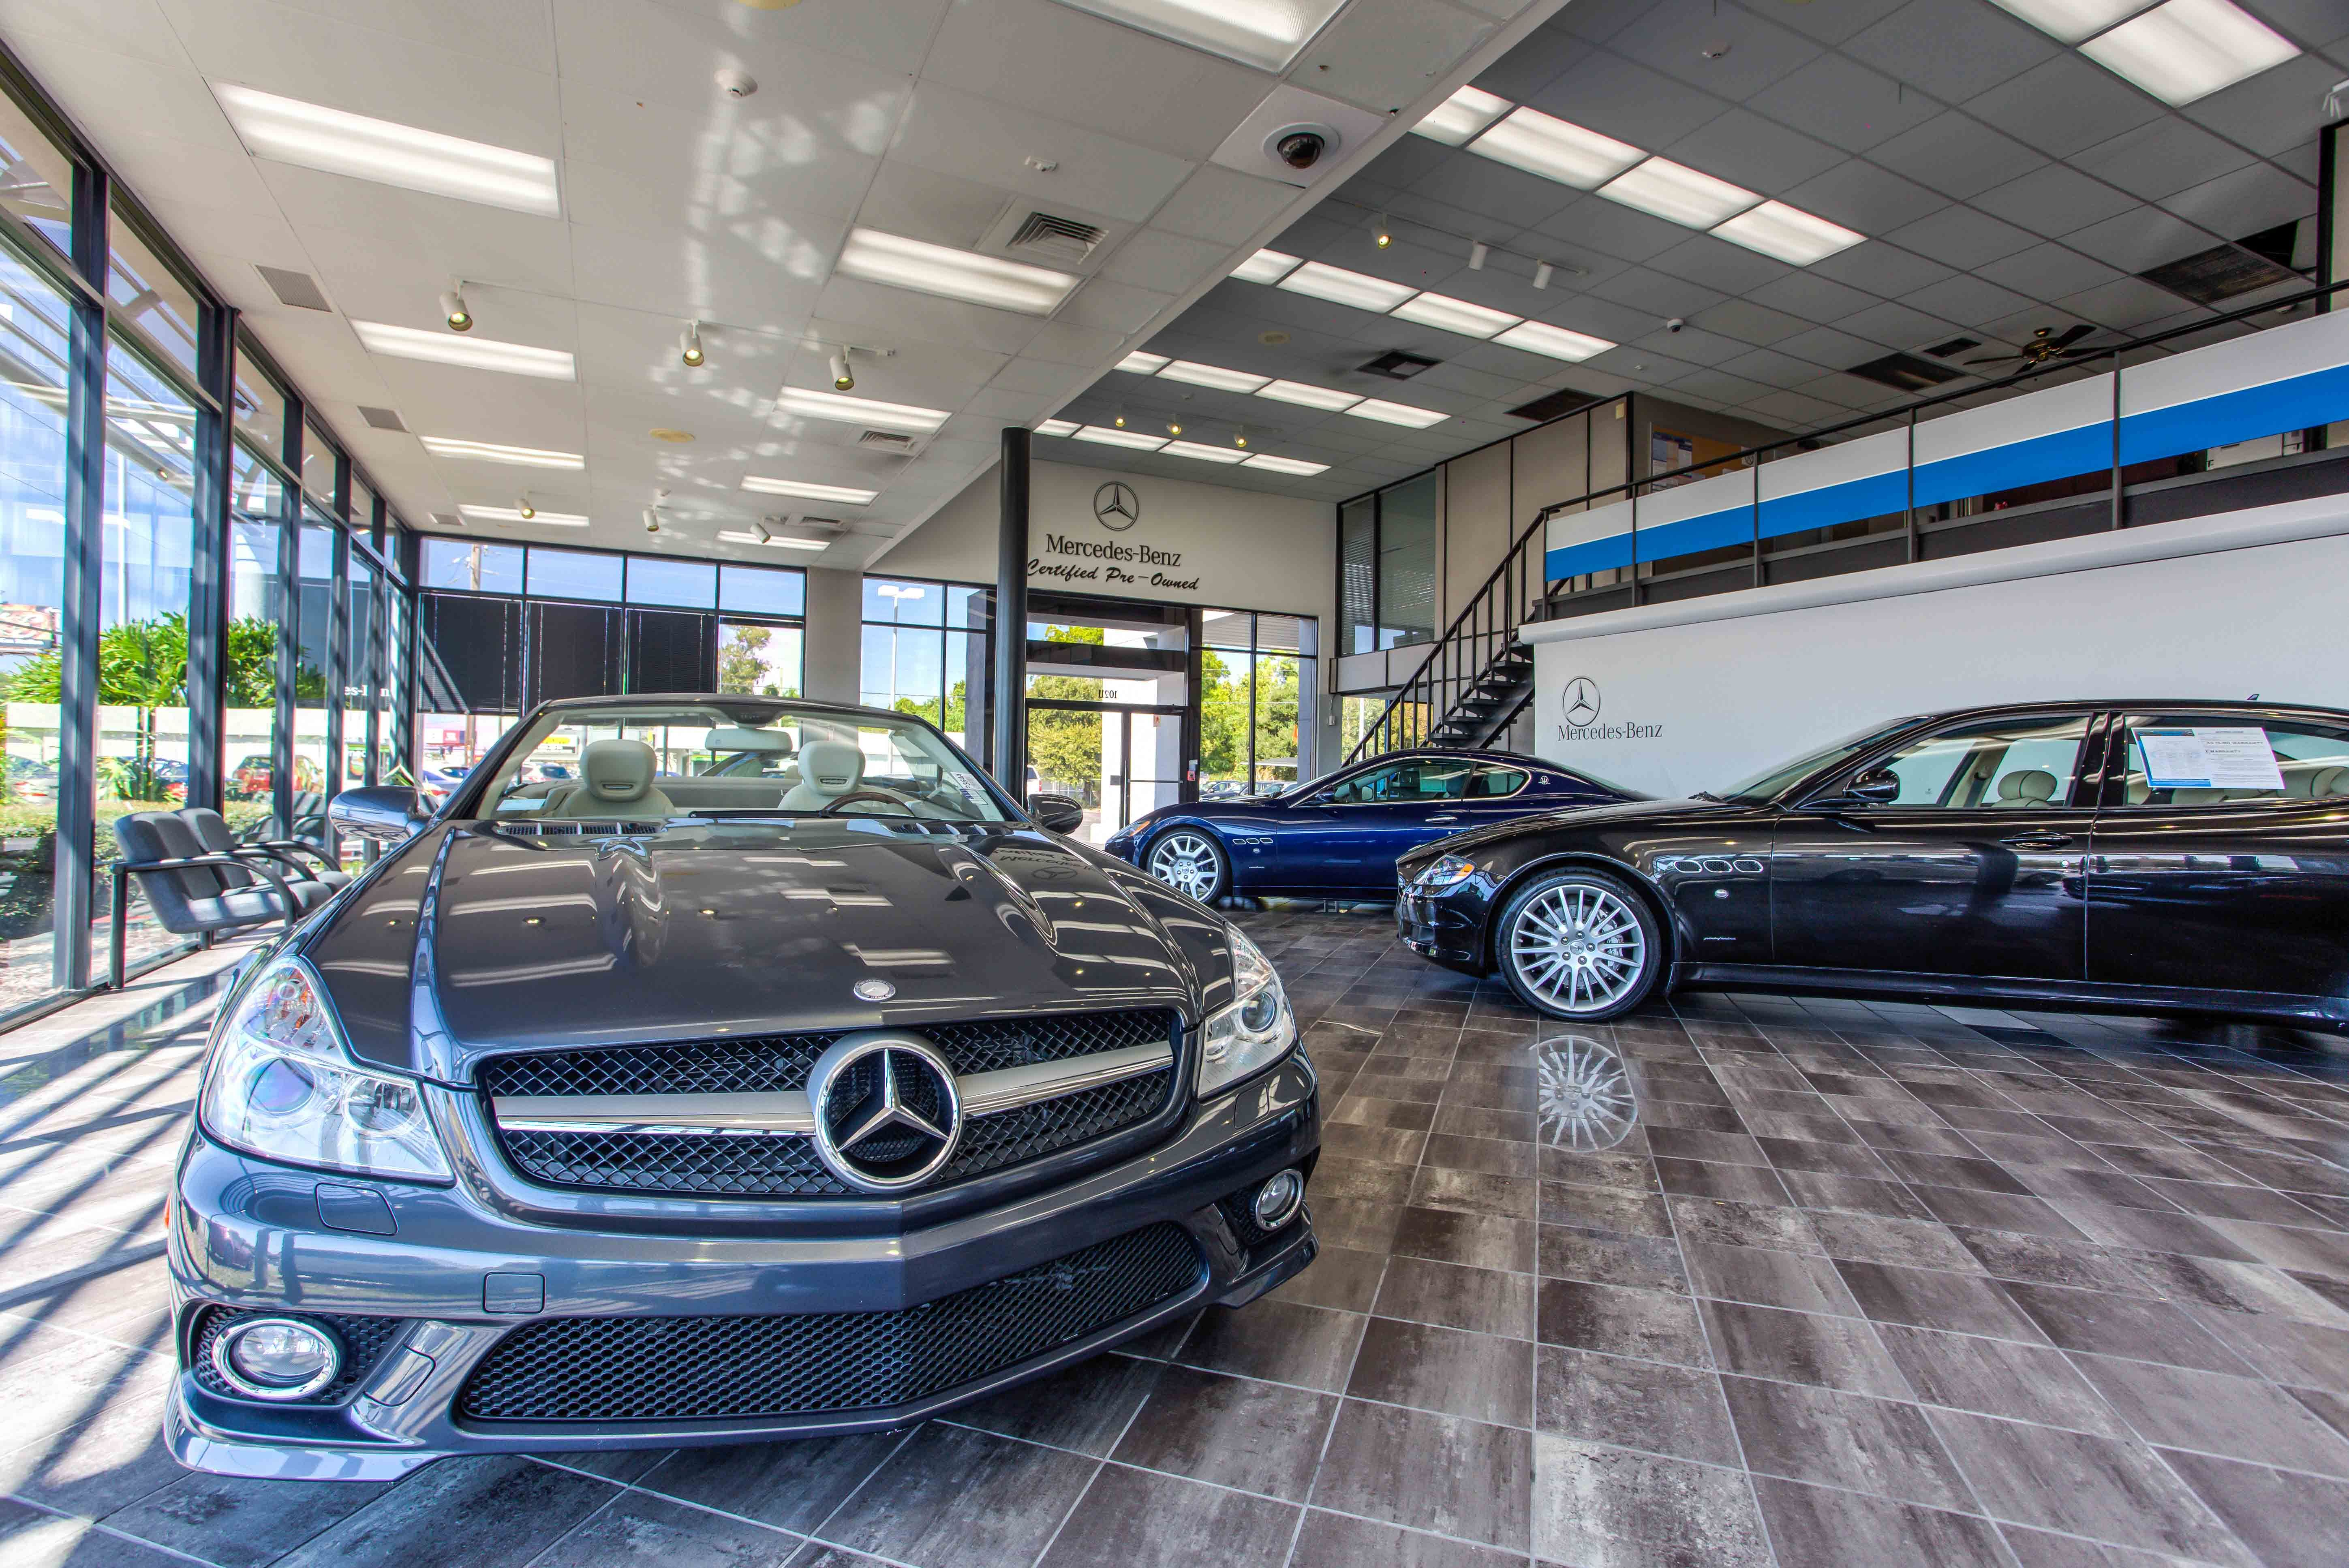 we are an authorized mercedes benz dealer in jacksonville fl mercedes benz of jacksonville treats the needs of ea mercedes benz dealer mercedes benz mercedes we are an authorized mercedes benz dealer in jacksonville fl mercedes benz of jacksonville treats the needs of ea mercedes benz dealer mercedes benz mercedes